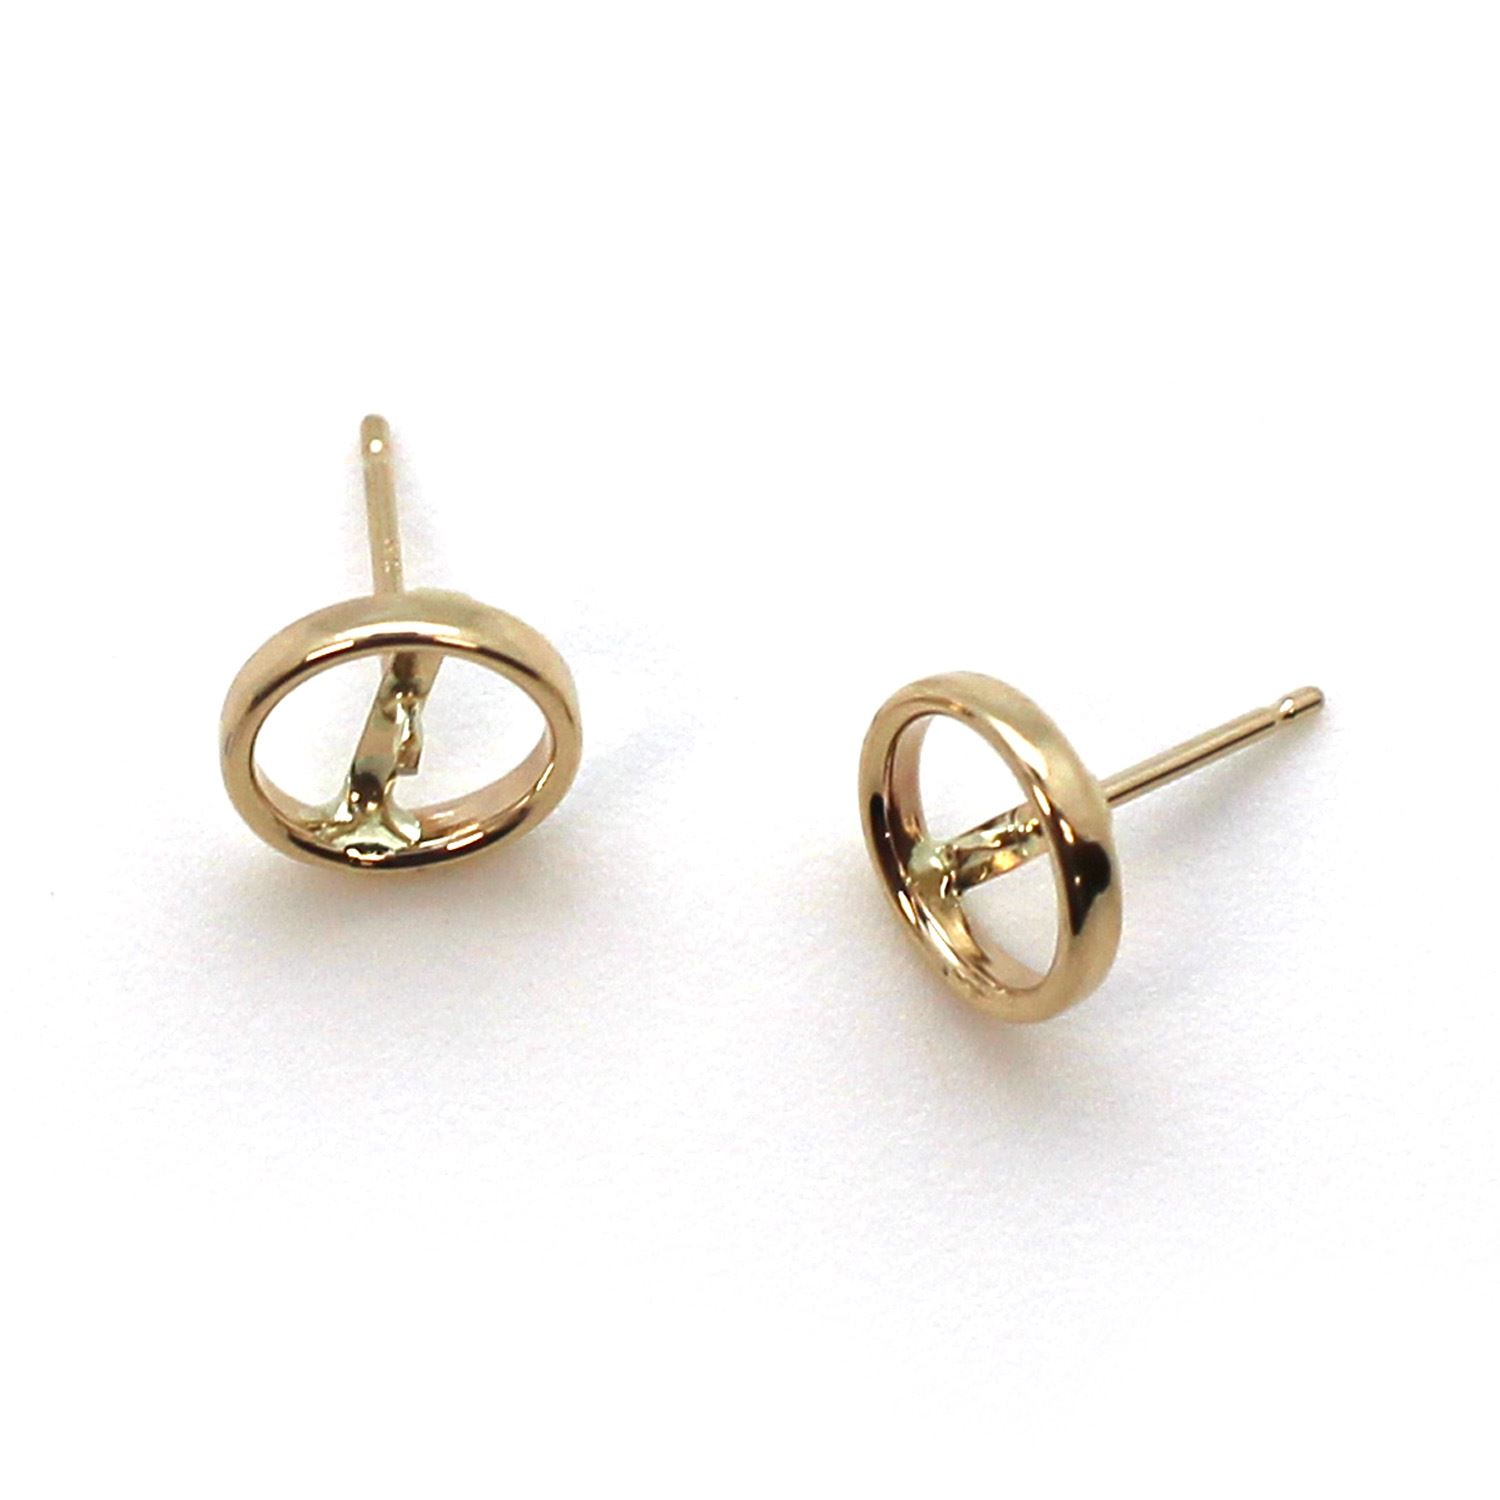 14K Yellow Gold Bezel Post for 7-7.5mm Pearls (1 pair)